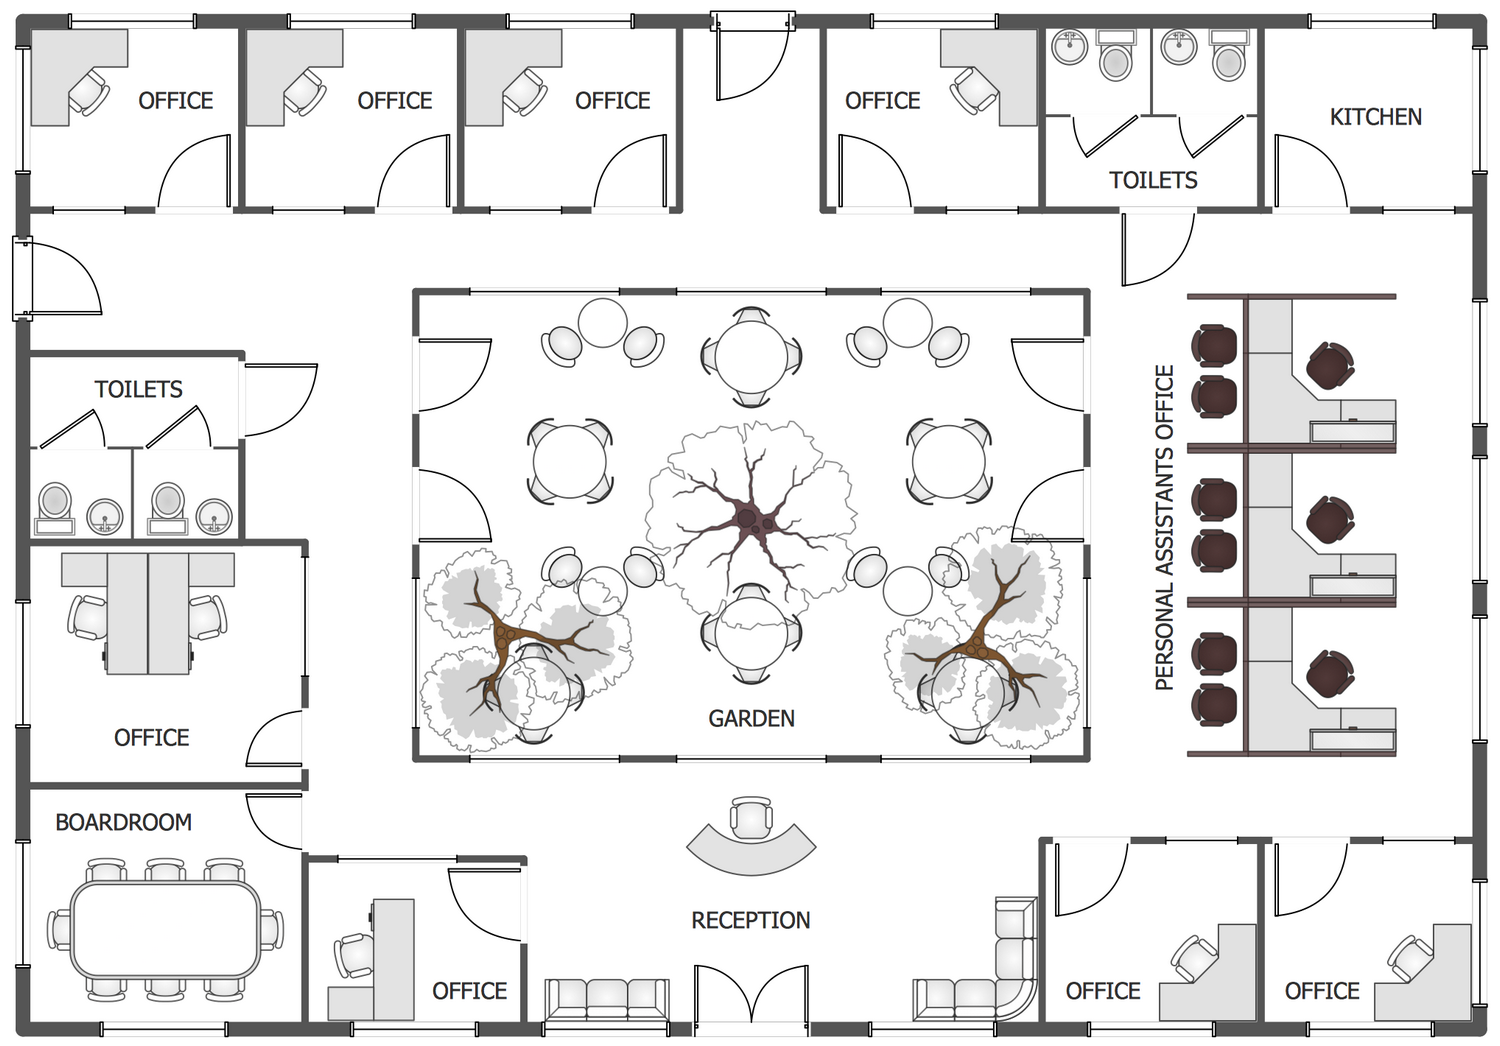 Office Layout Plans Solution ConceptDrawcom - Design a floor plan template